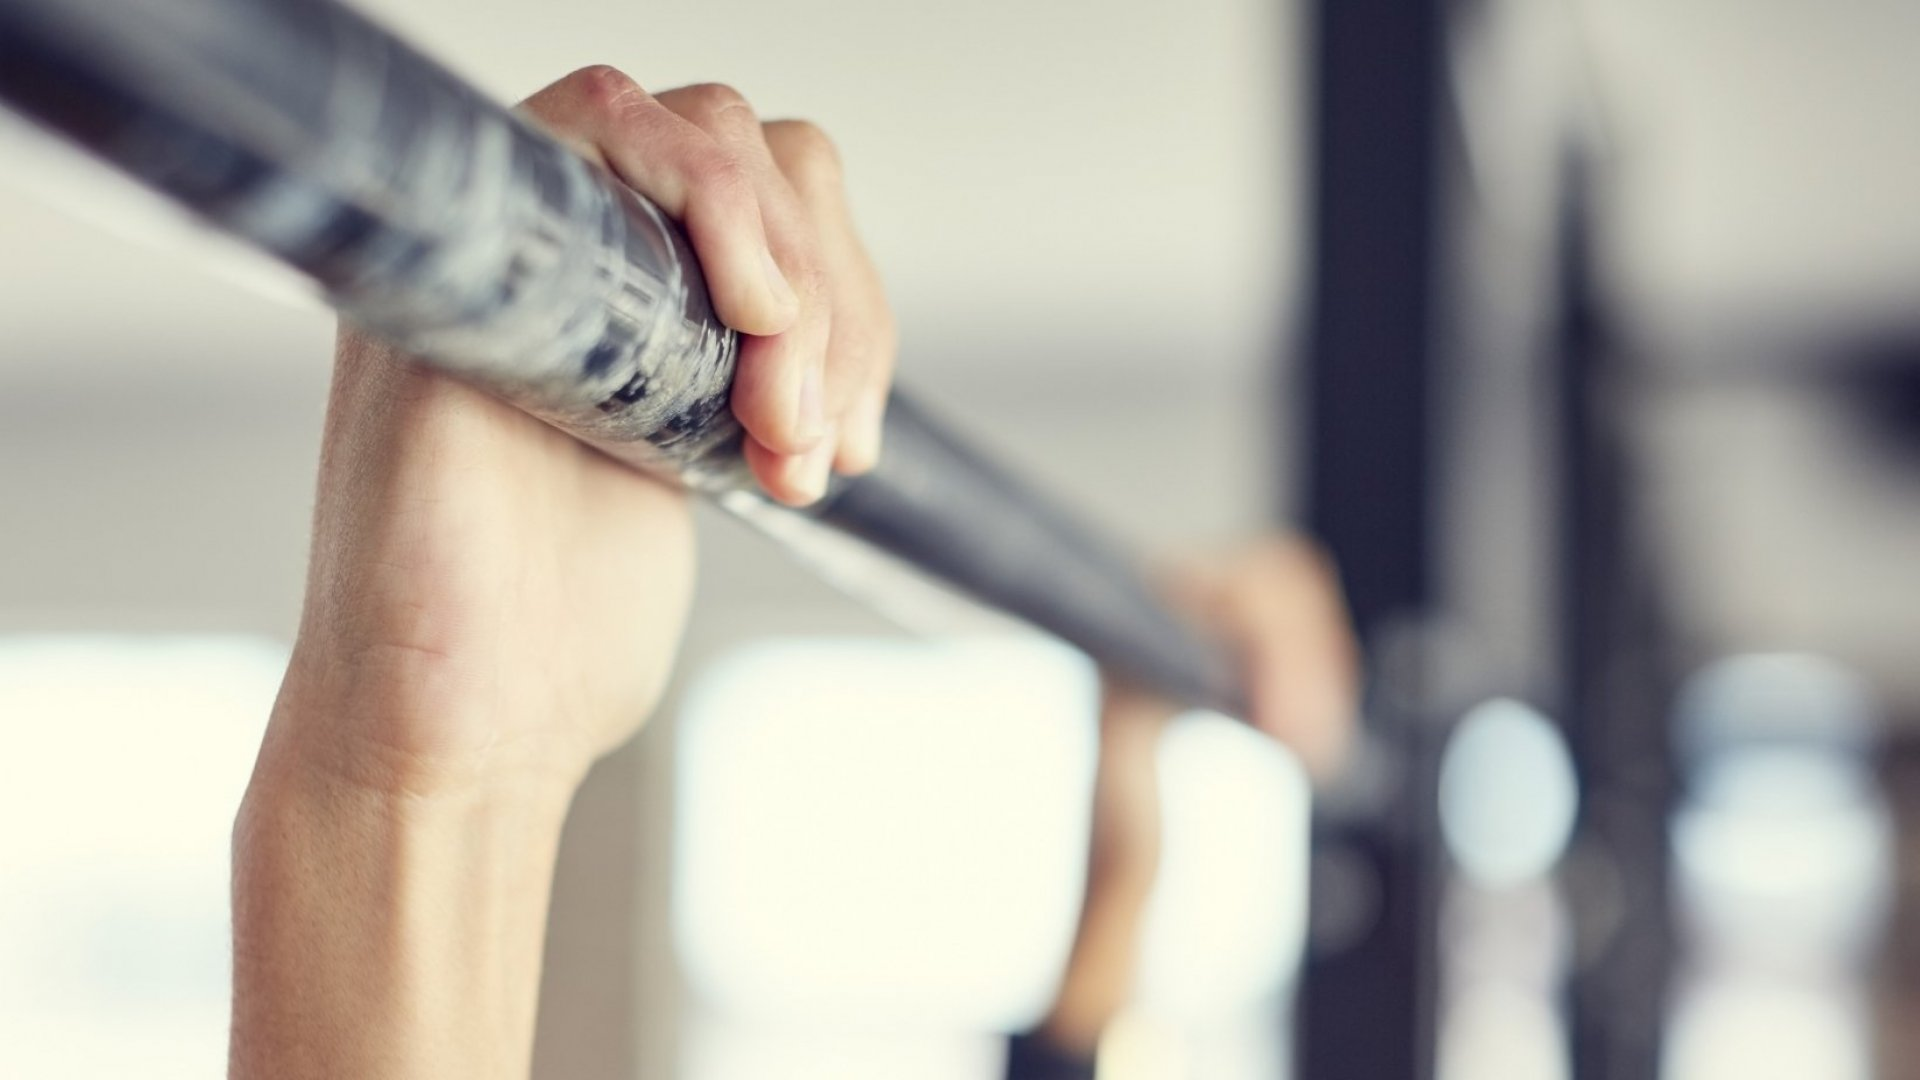 Want to Get in Better Shape? This Is the Best Way to Get Stronger